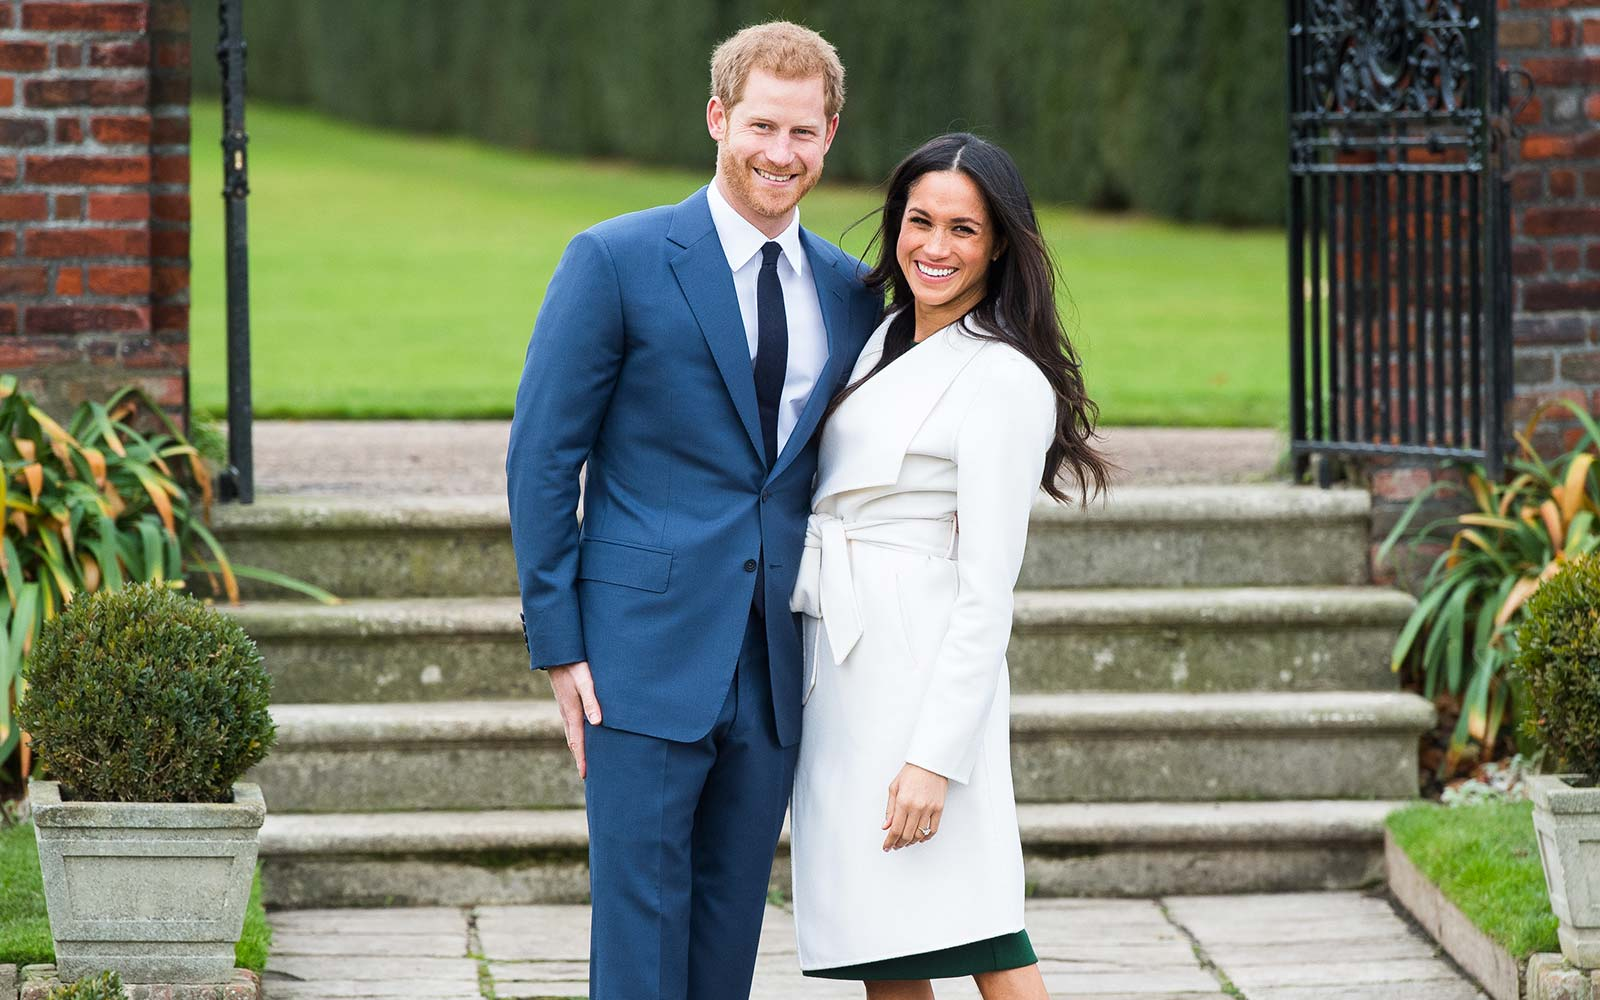 Prince Harry and Meghan Markle's Wedding Date Is a Break From Royal Tradition